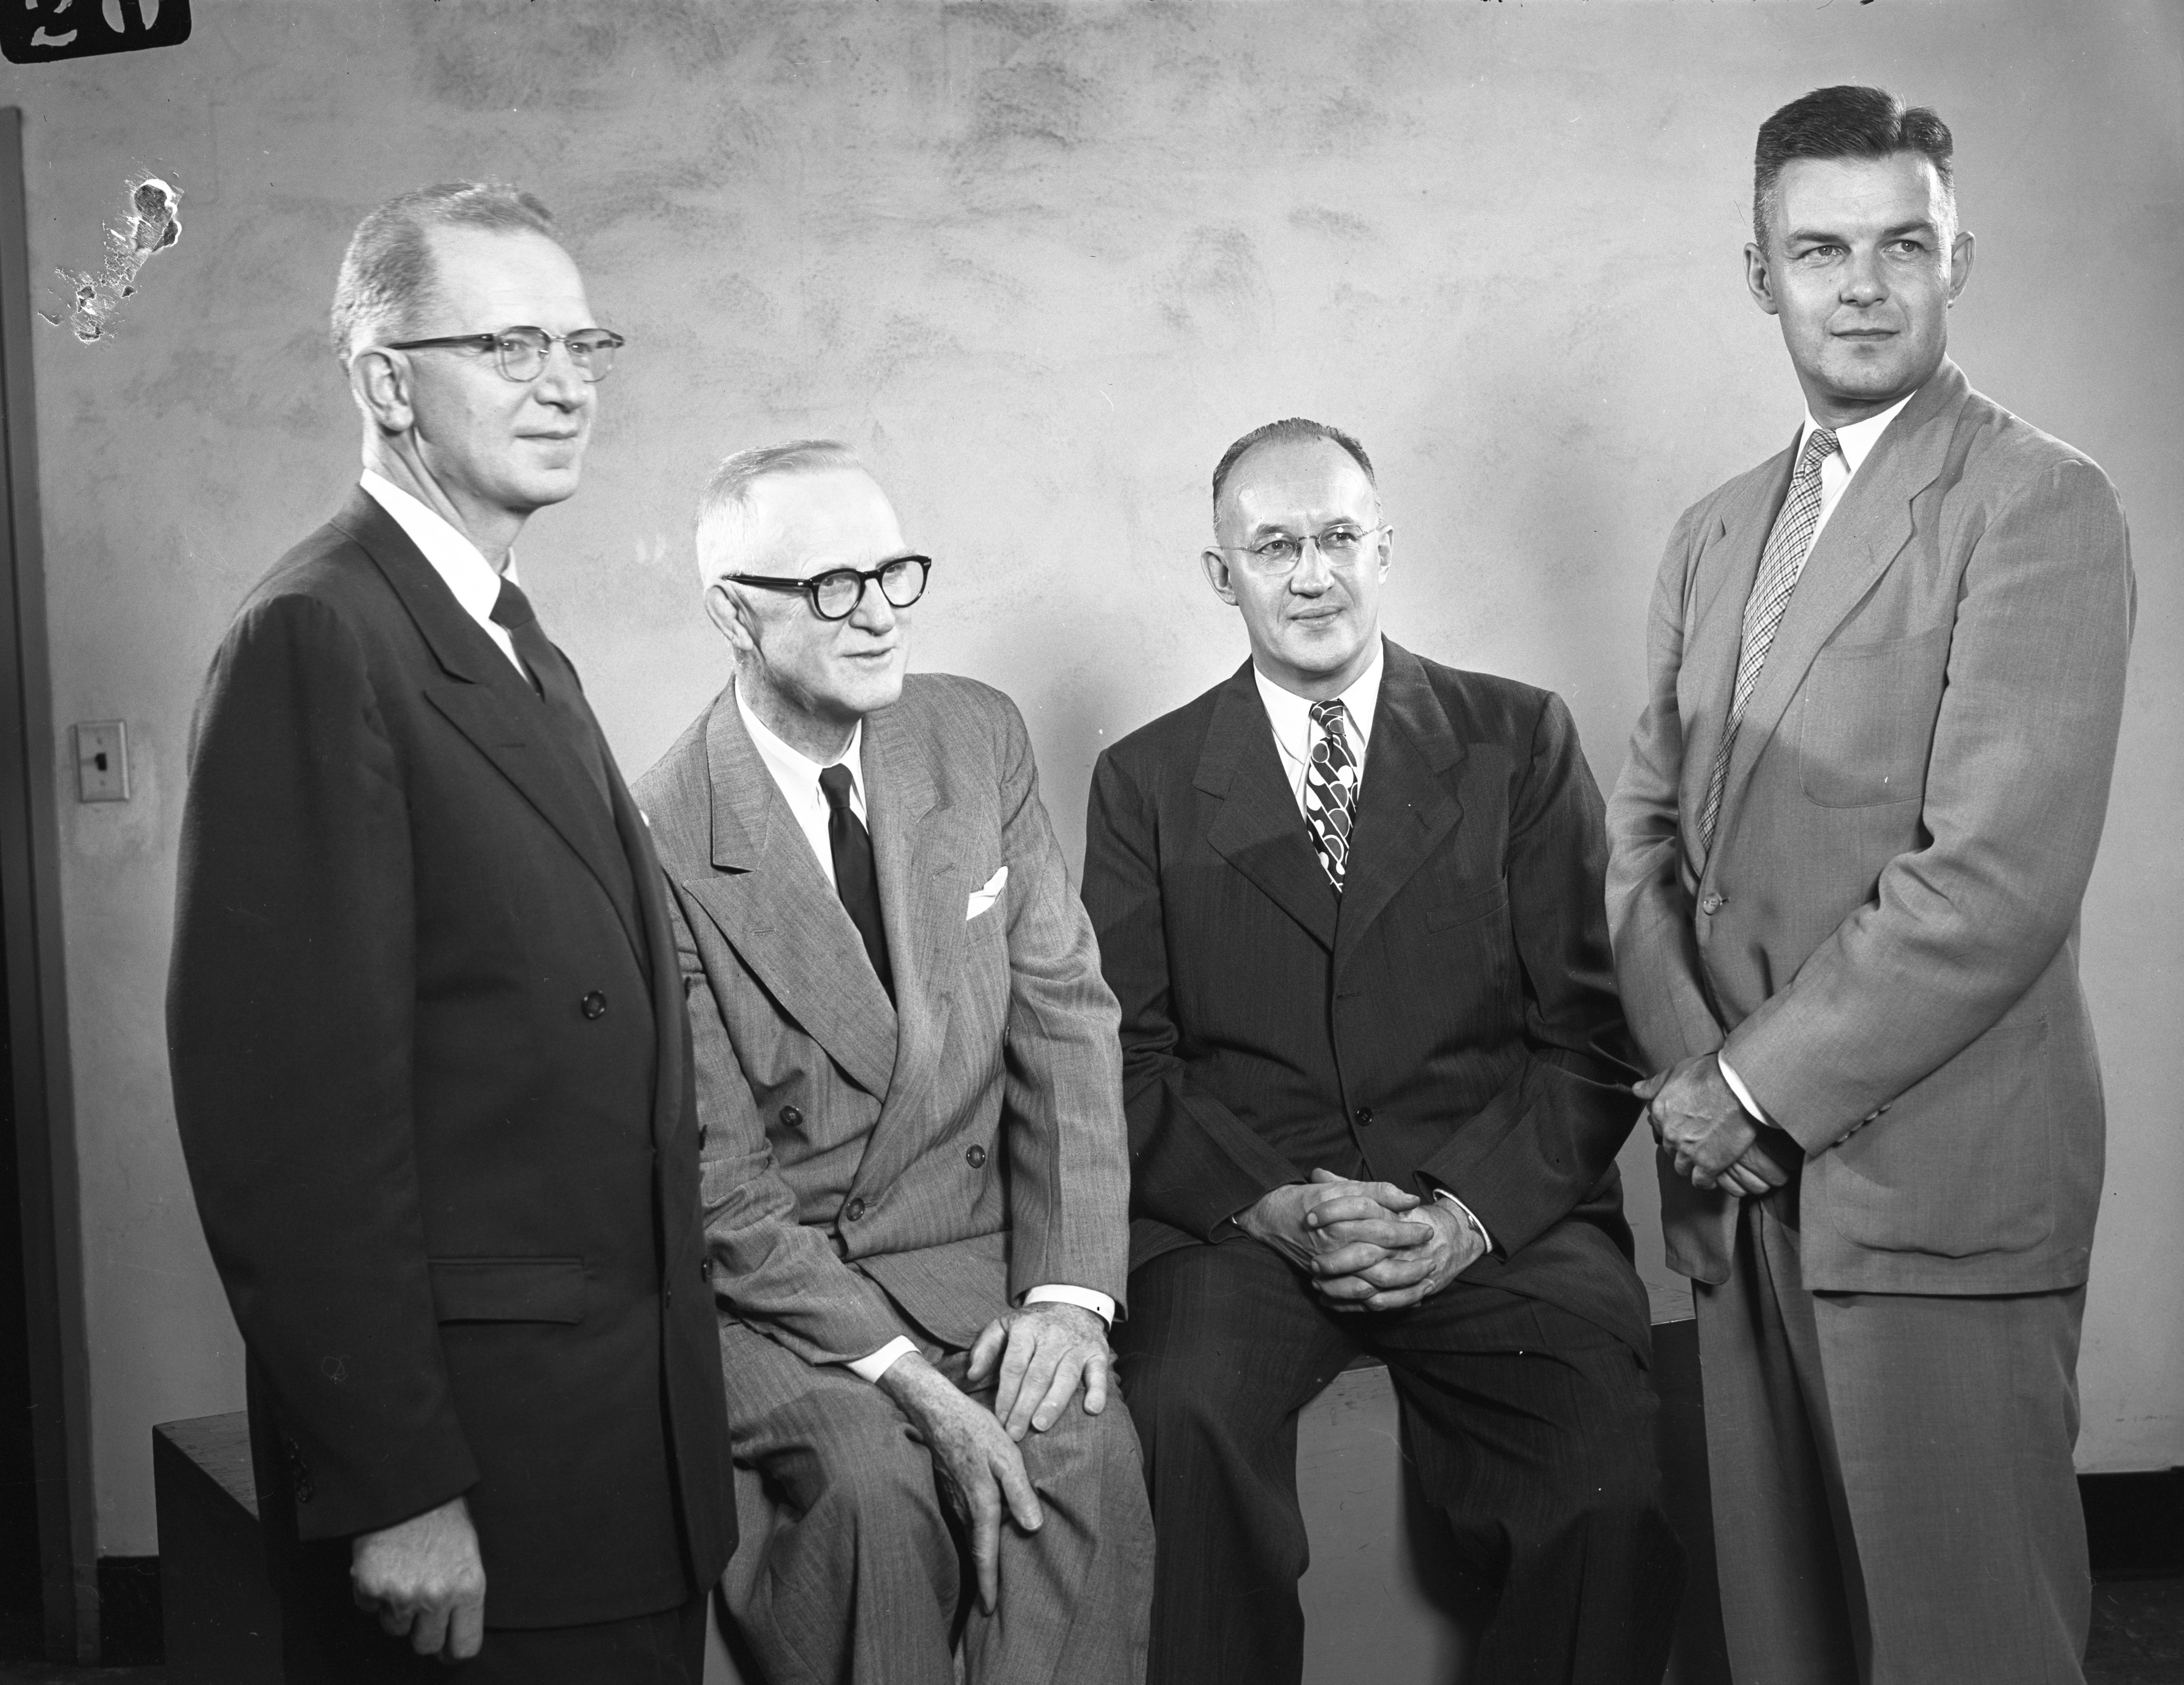 Leaders of United Church Canvass, October 1954 image